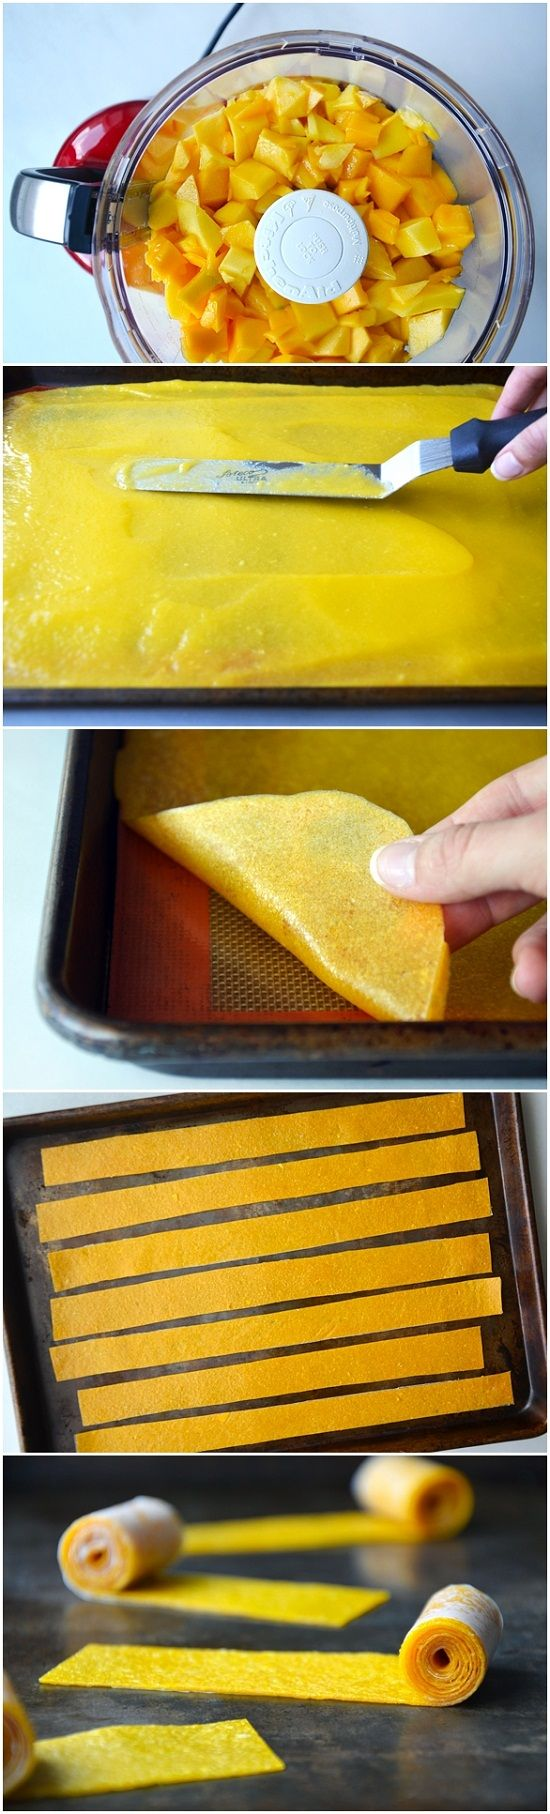 No.  Way.   Homemade mango fruit rollups - the only ingredient is mango.  Puree, spread, bake 3-4 hours at 175 and done. For desserts